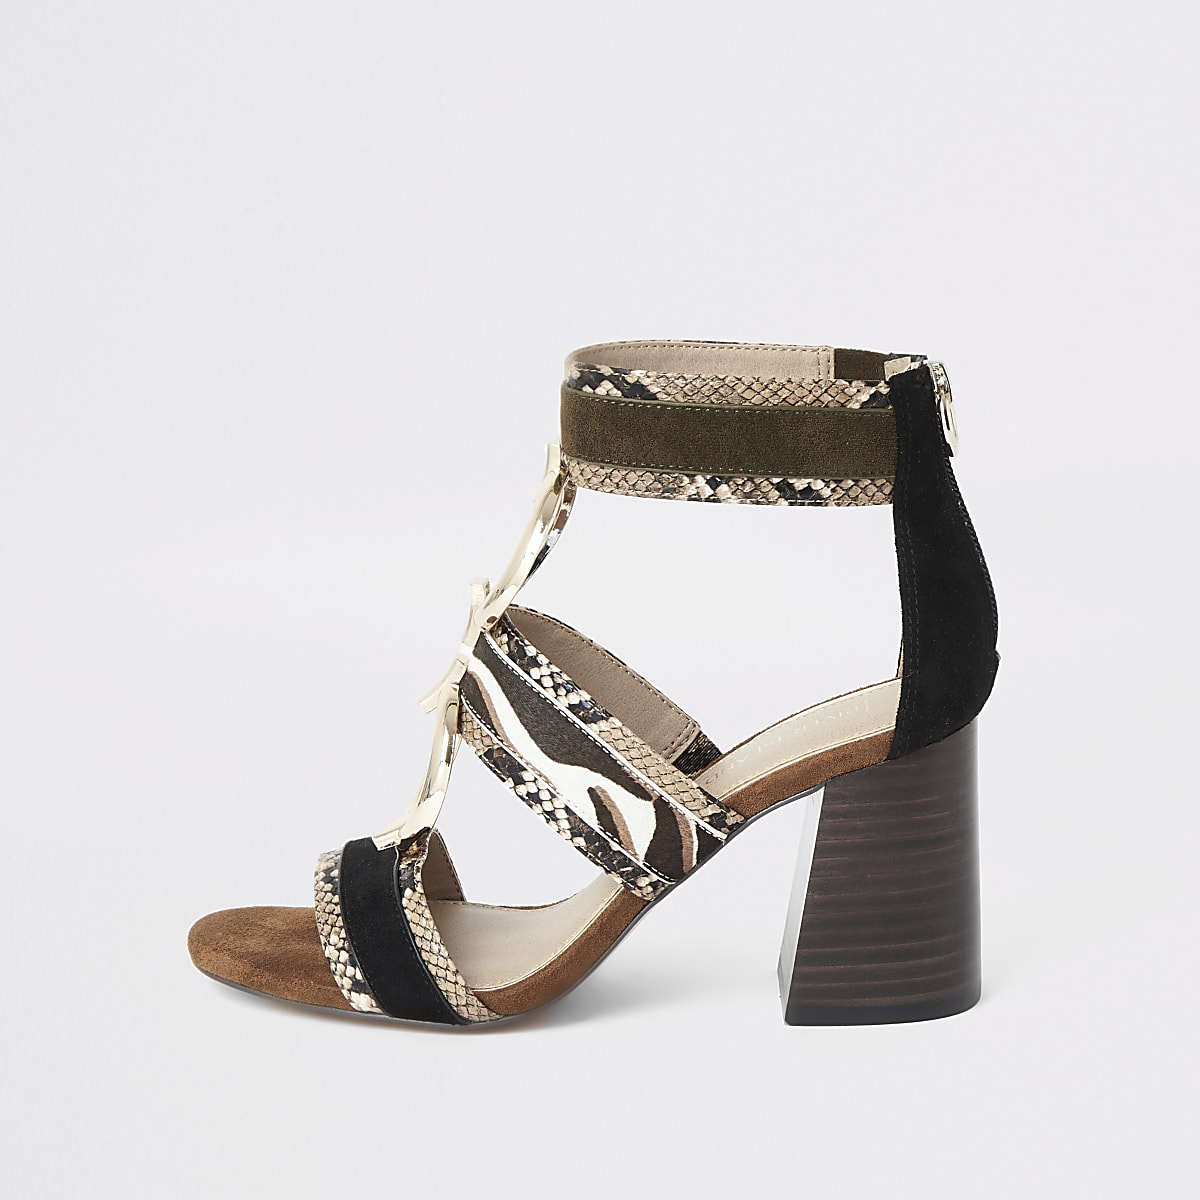 Brown snake print block heel sandals